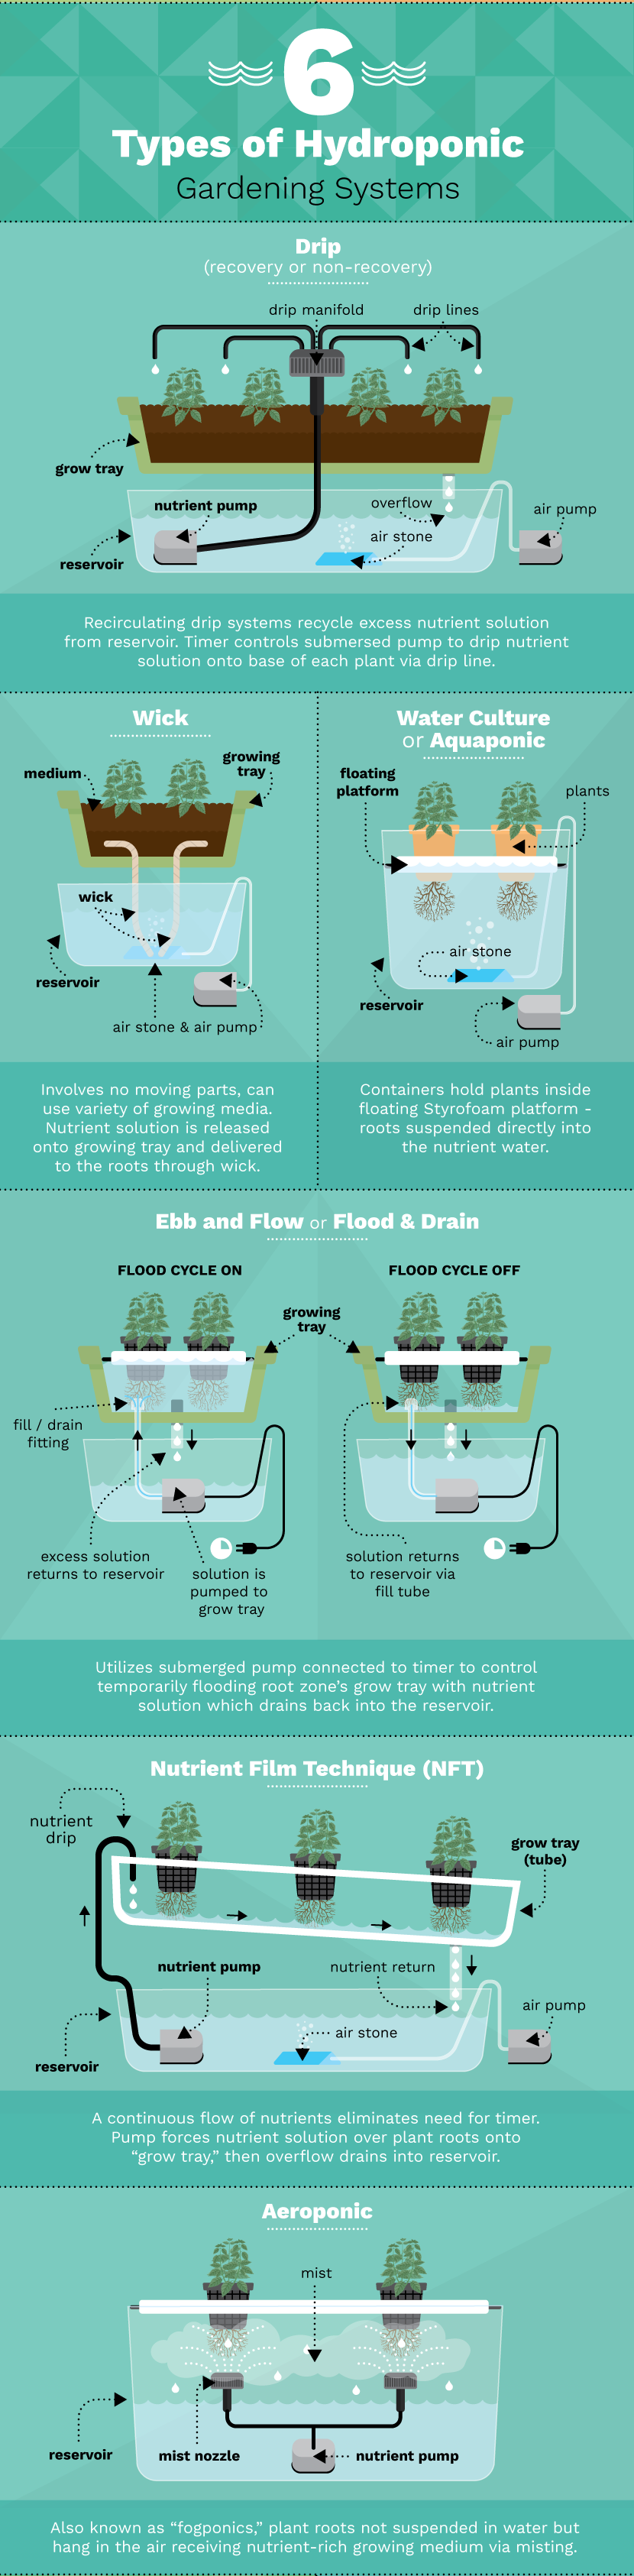 6 Different Hydroponic Gardening Systems For Growing Food Eco